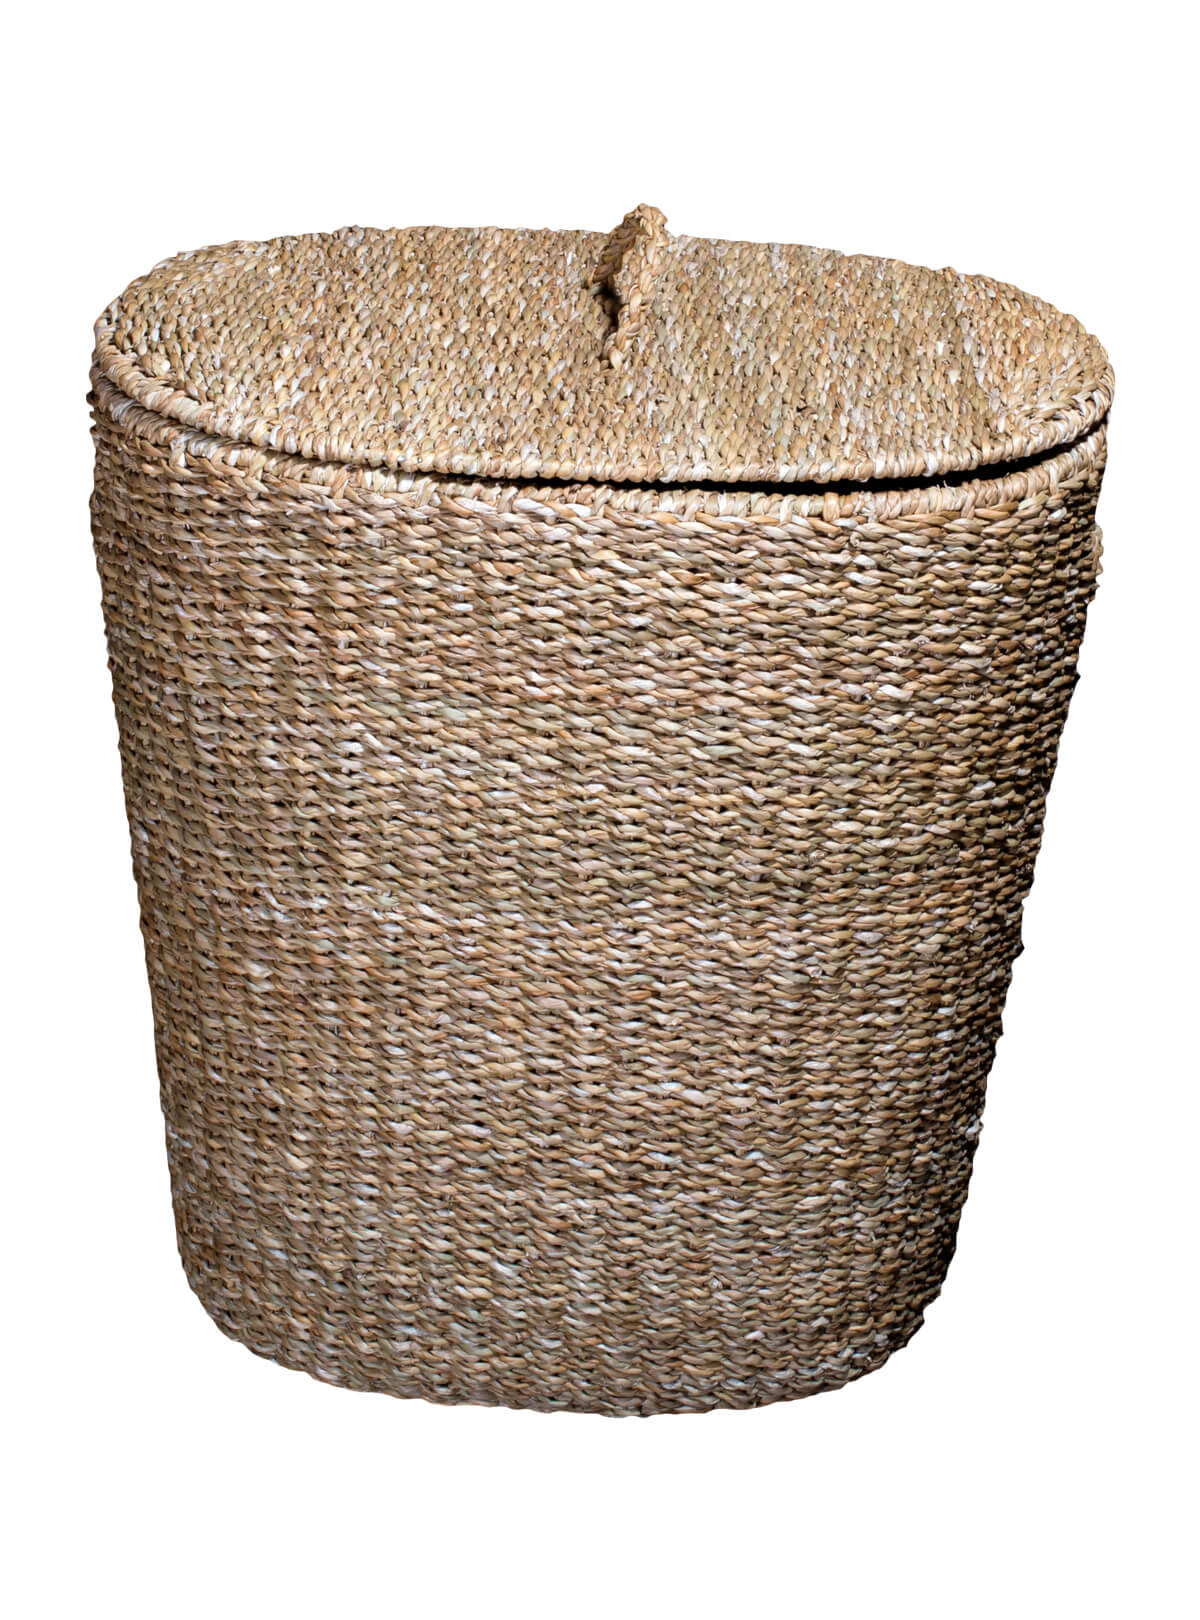 Palm Fiber Oval Laundry Basket